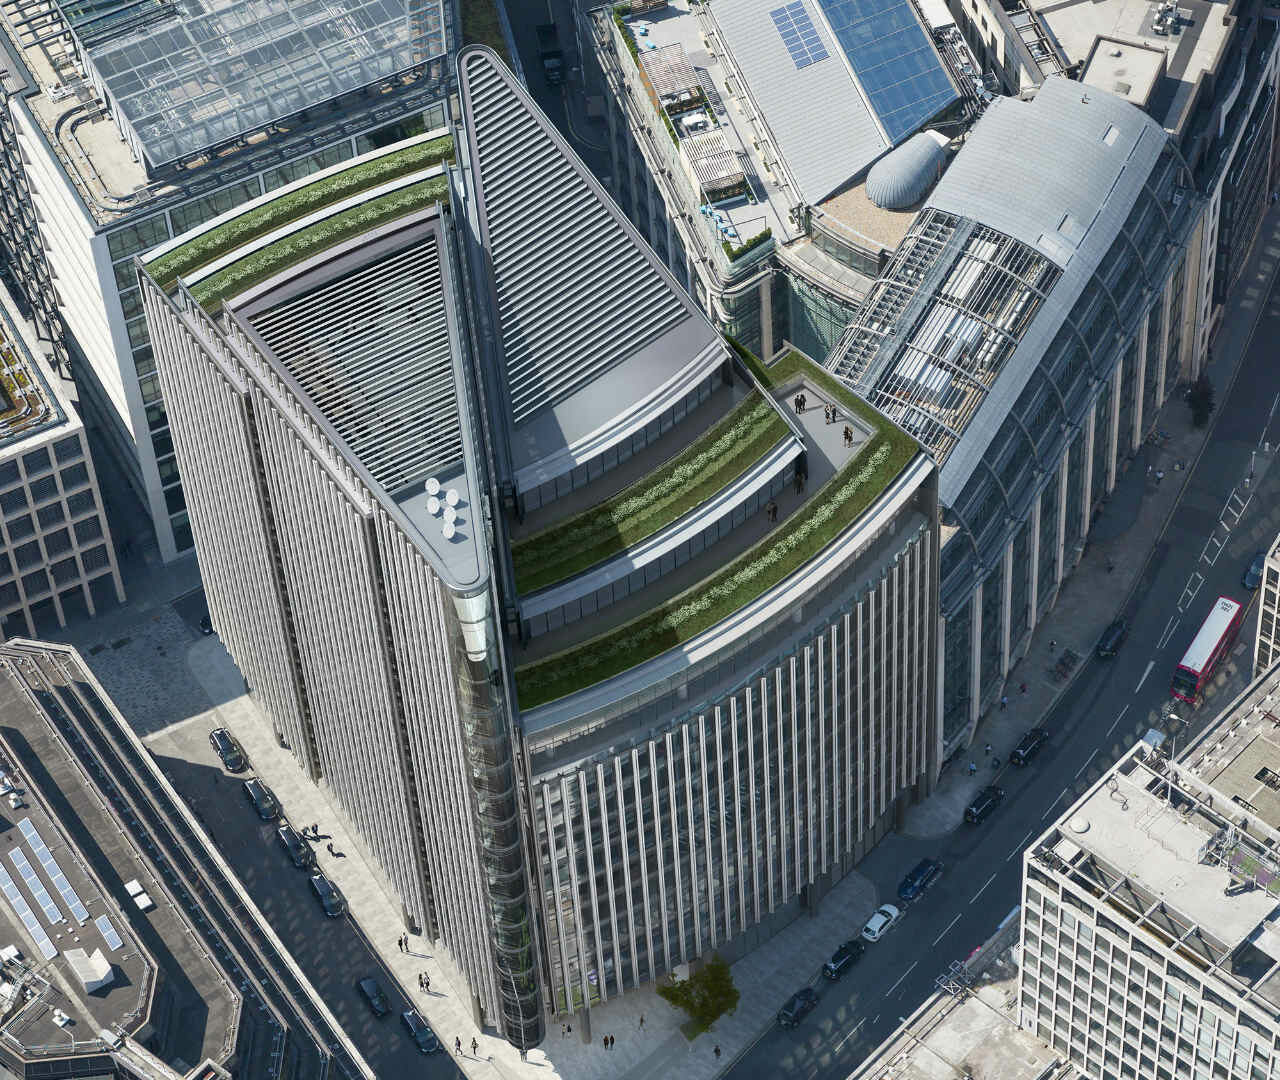 New Deloitte London office is largest in the world to achieve leading certifications